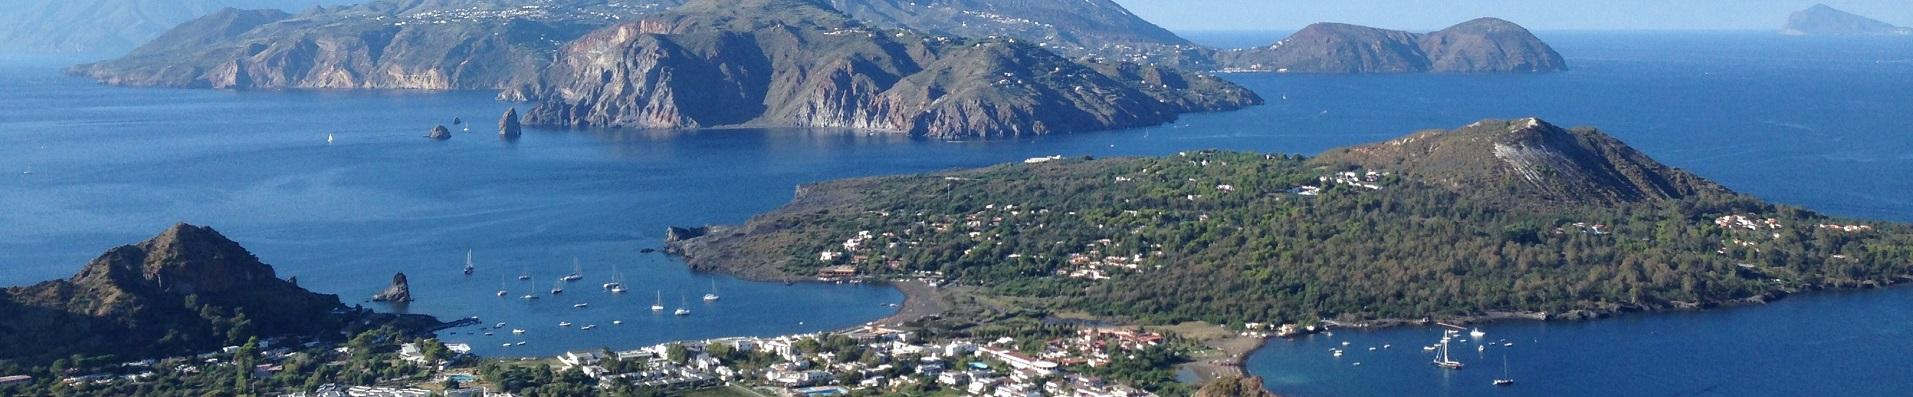 Villas to rent for the holidays in the Aeolian islands